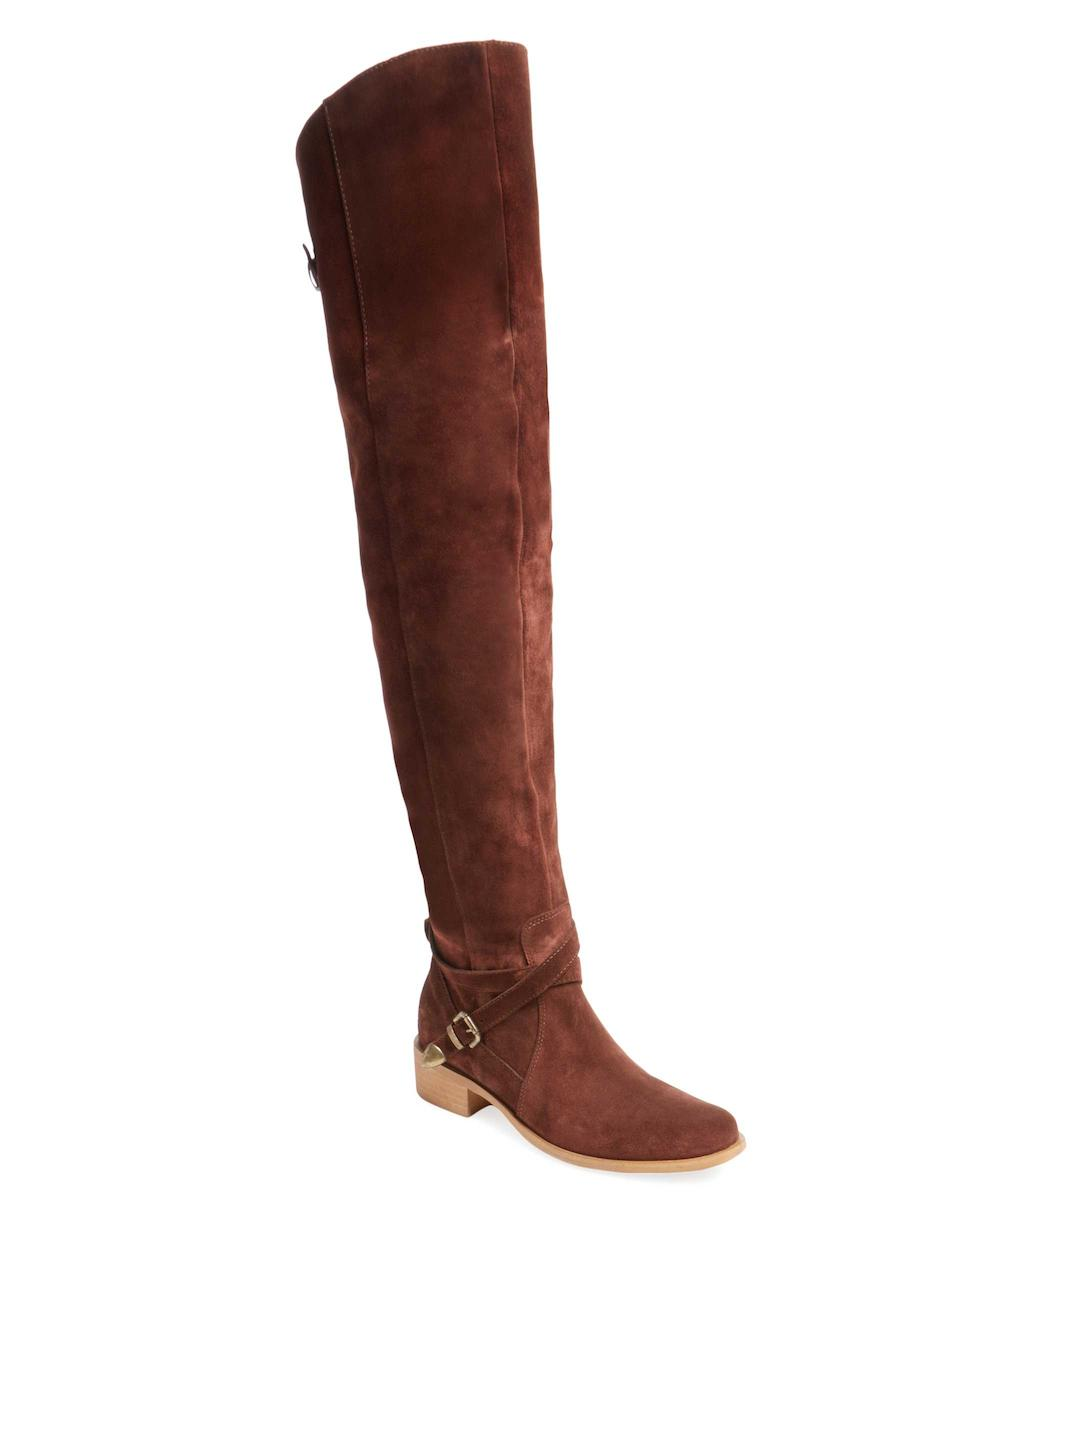 962a9869b116ff Lyst - Charles David Gianna Over The Knee Boot in Brown